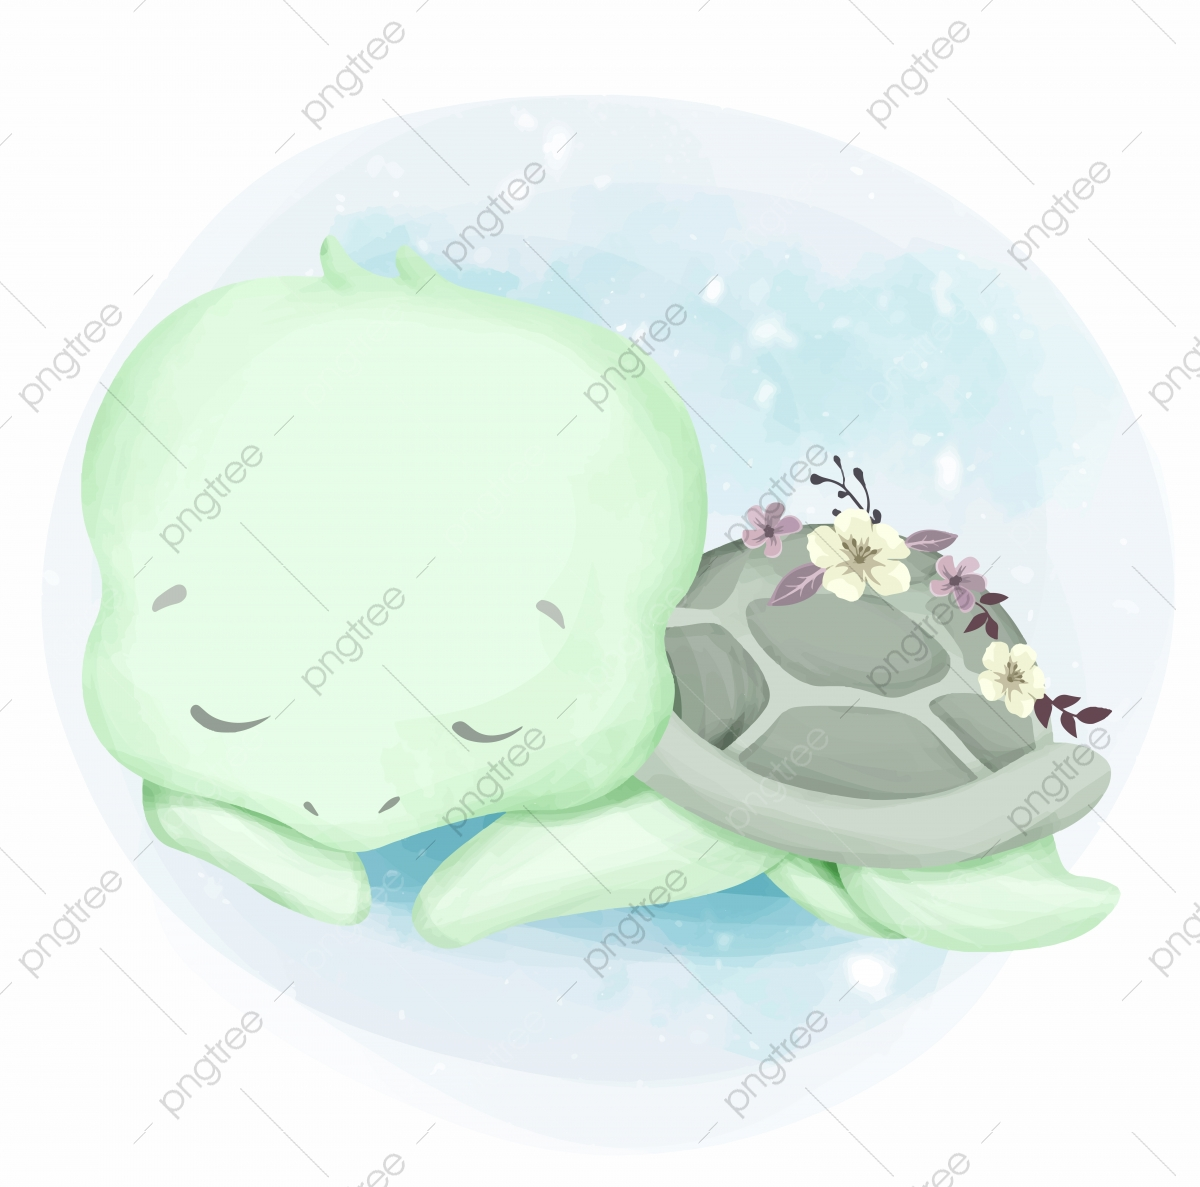 Cute Baby Turtle To Sleep Adorable Animal Art Png And Vector